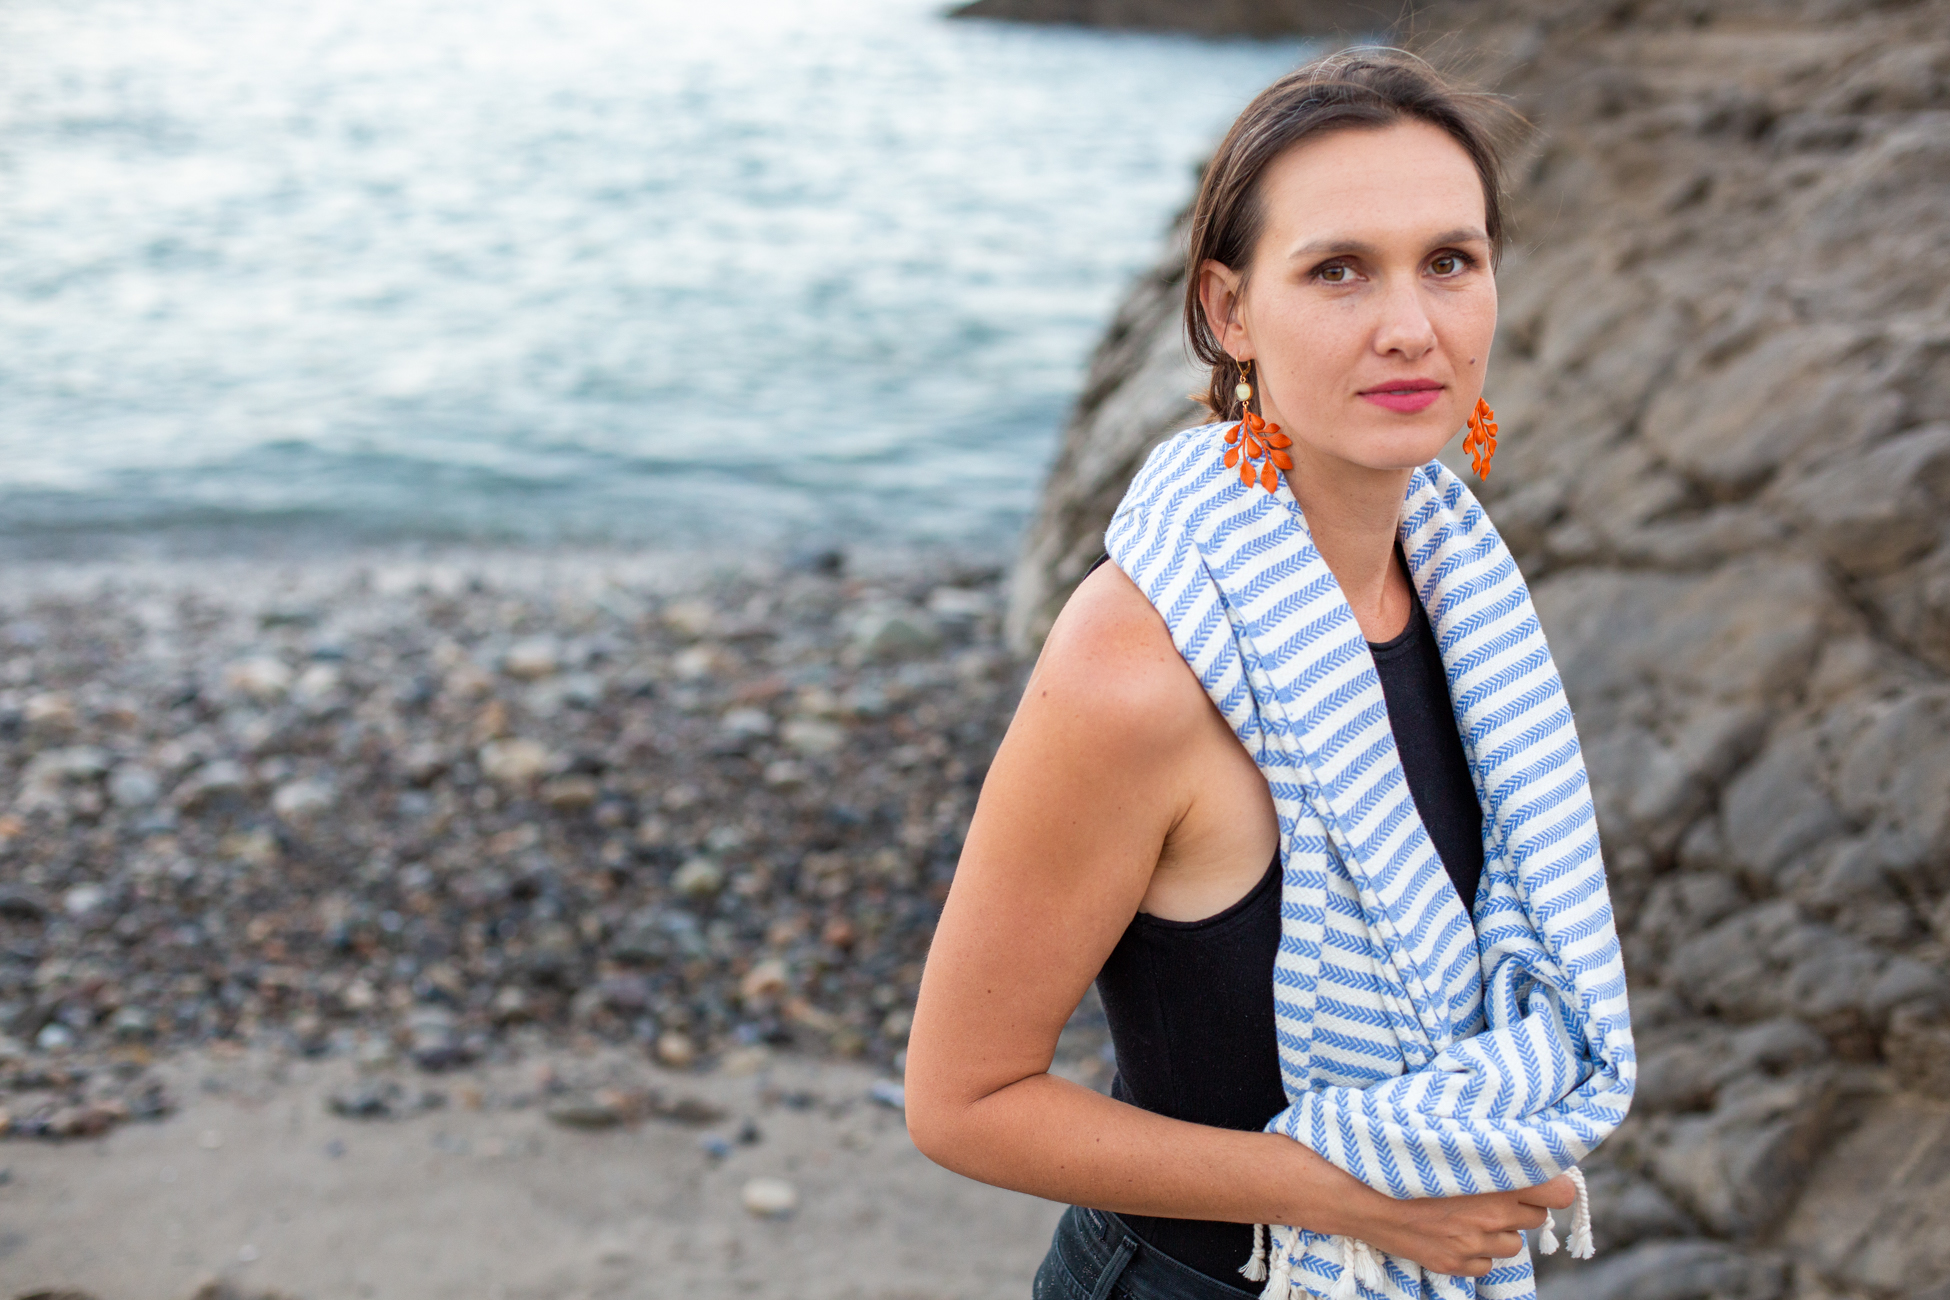 Fig. 5 Collab between Together Textiles (turkish towel) and joeyfivecents (earrings) at sunset on Leo Carrillo State Park beach.